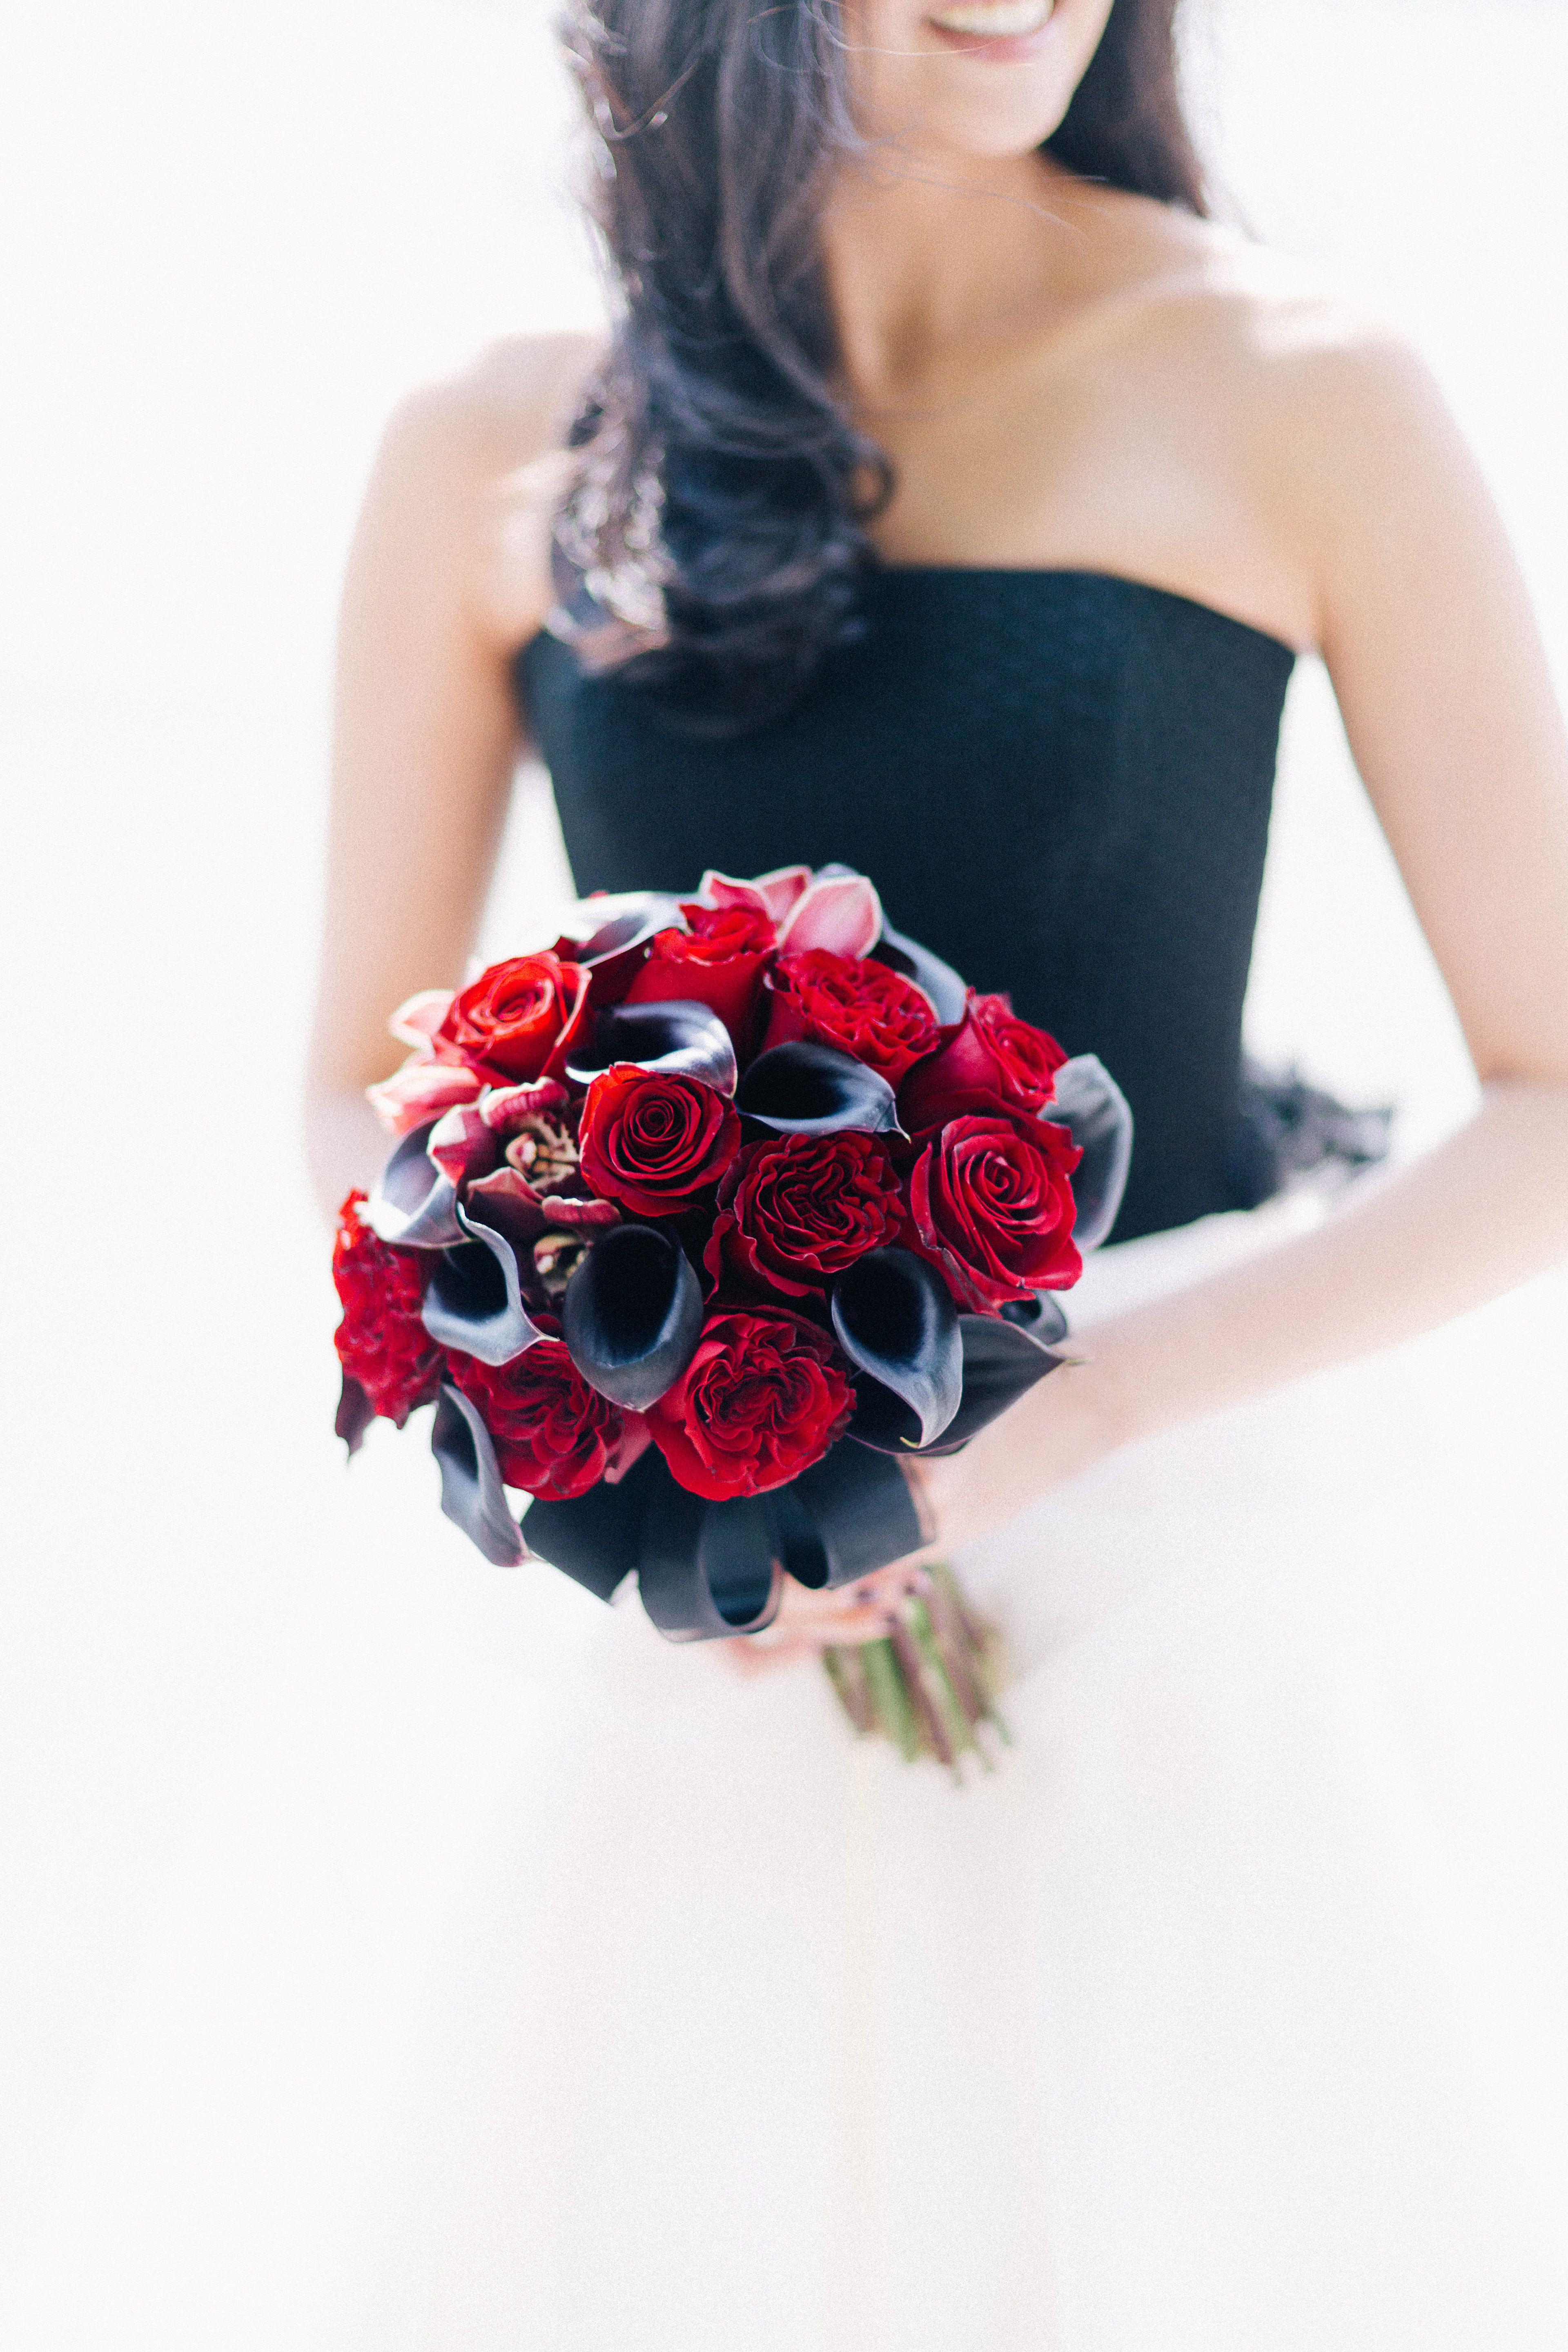 Roses Orchids And Calla Lilies In An Array Of Red Tones Were Used